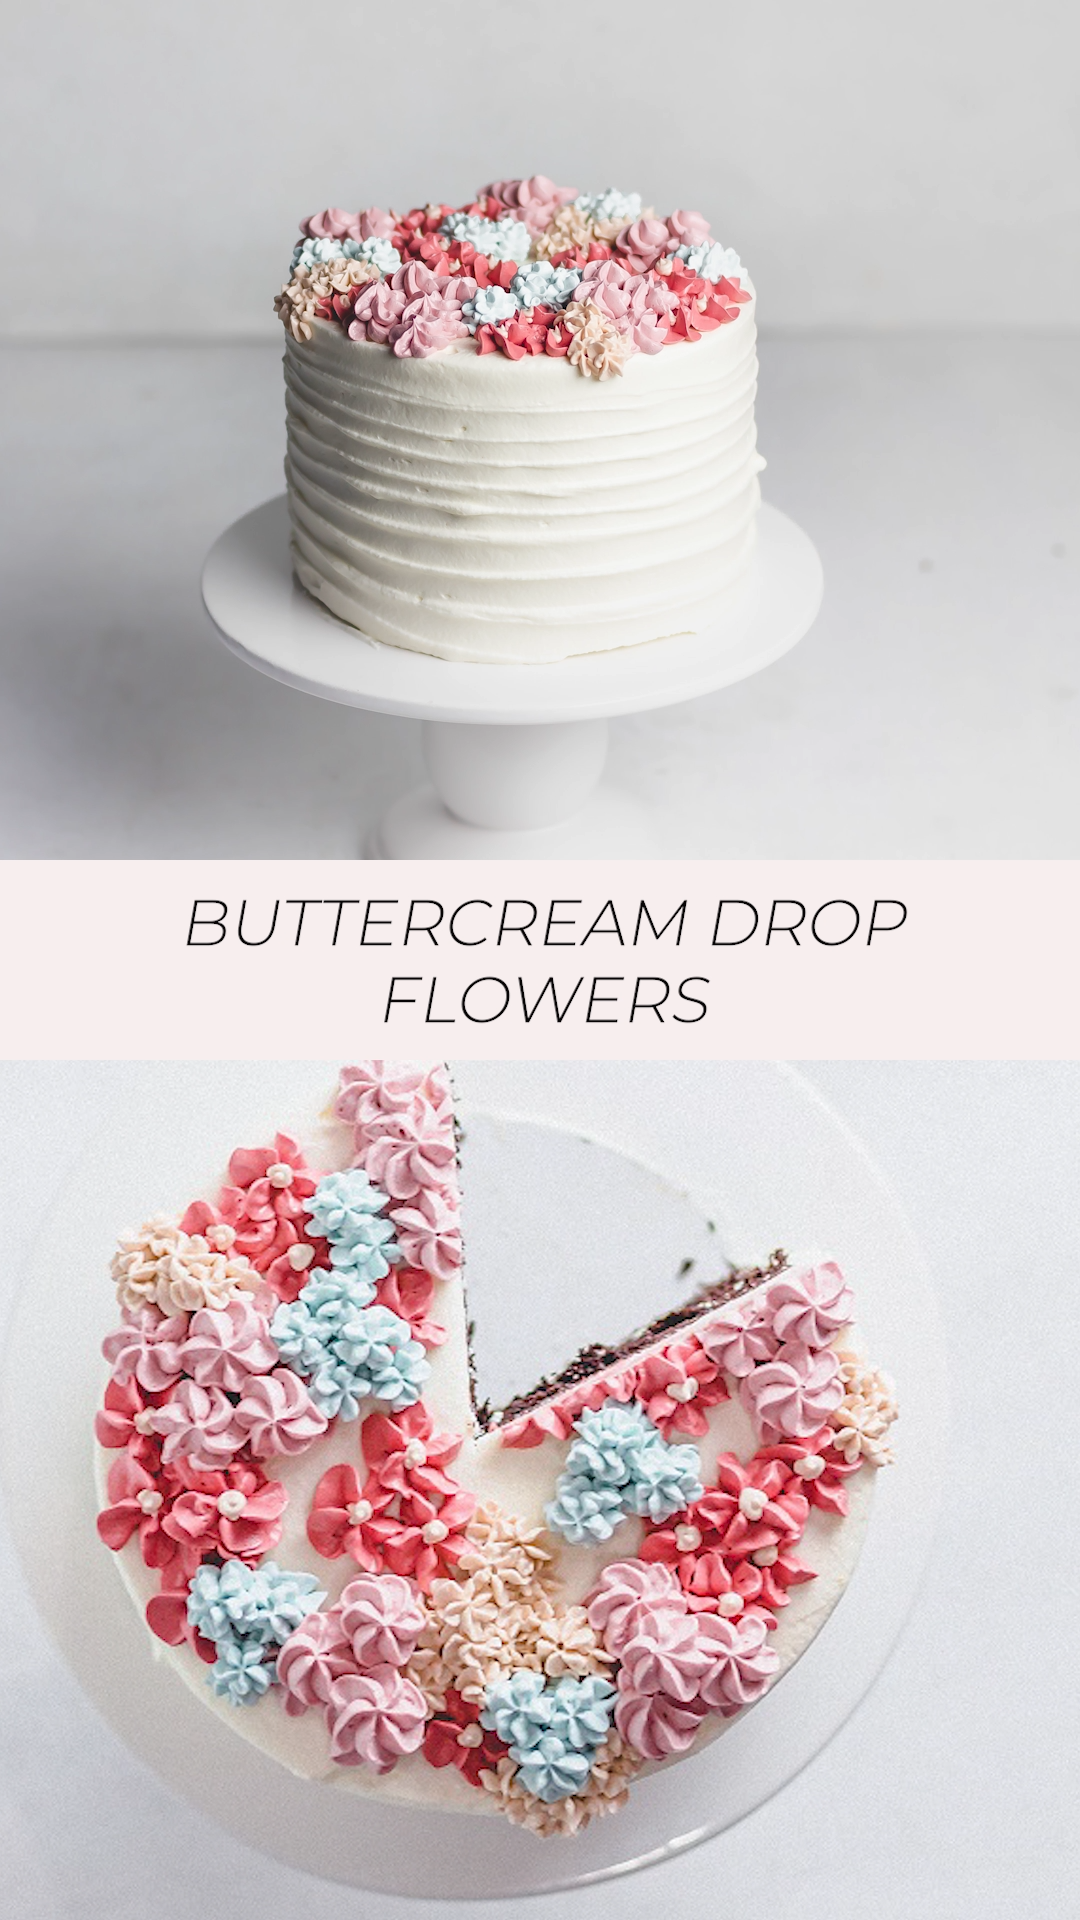 How to Pipe Basic Buttercream Drop Flowers